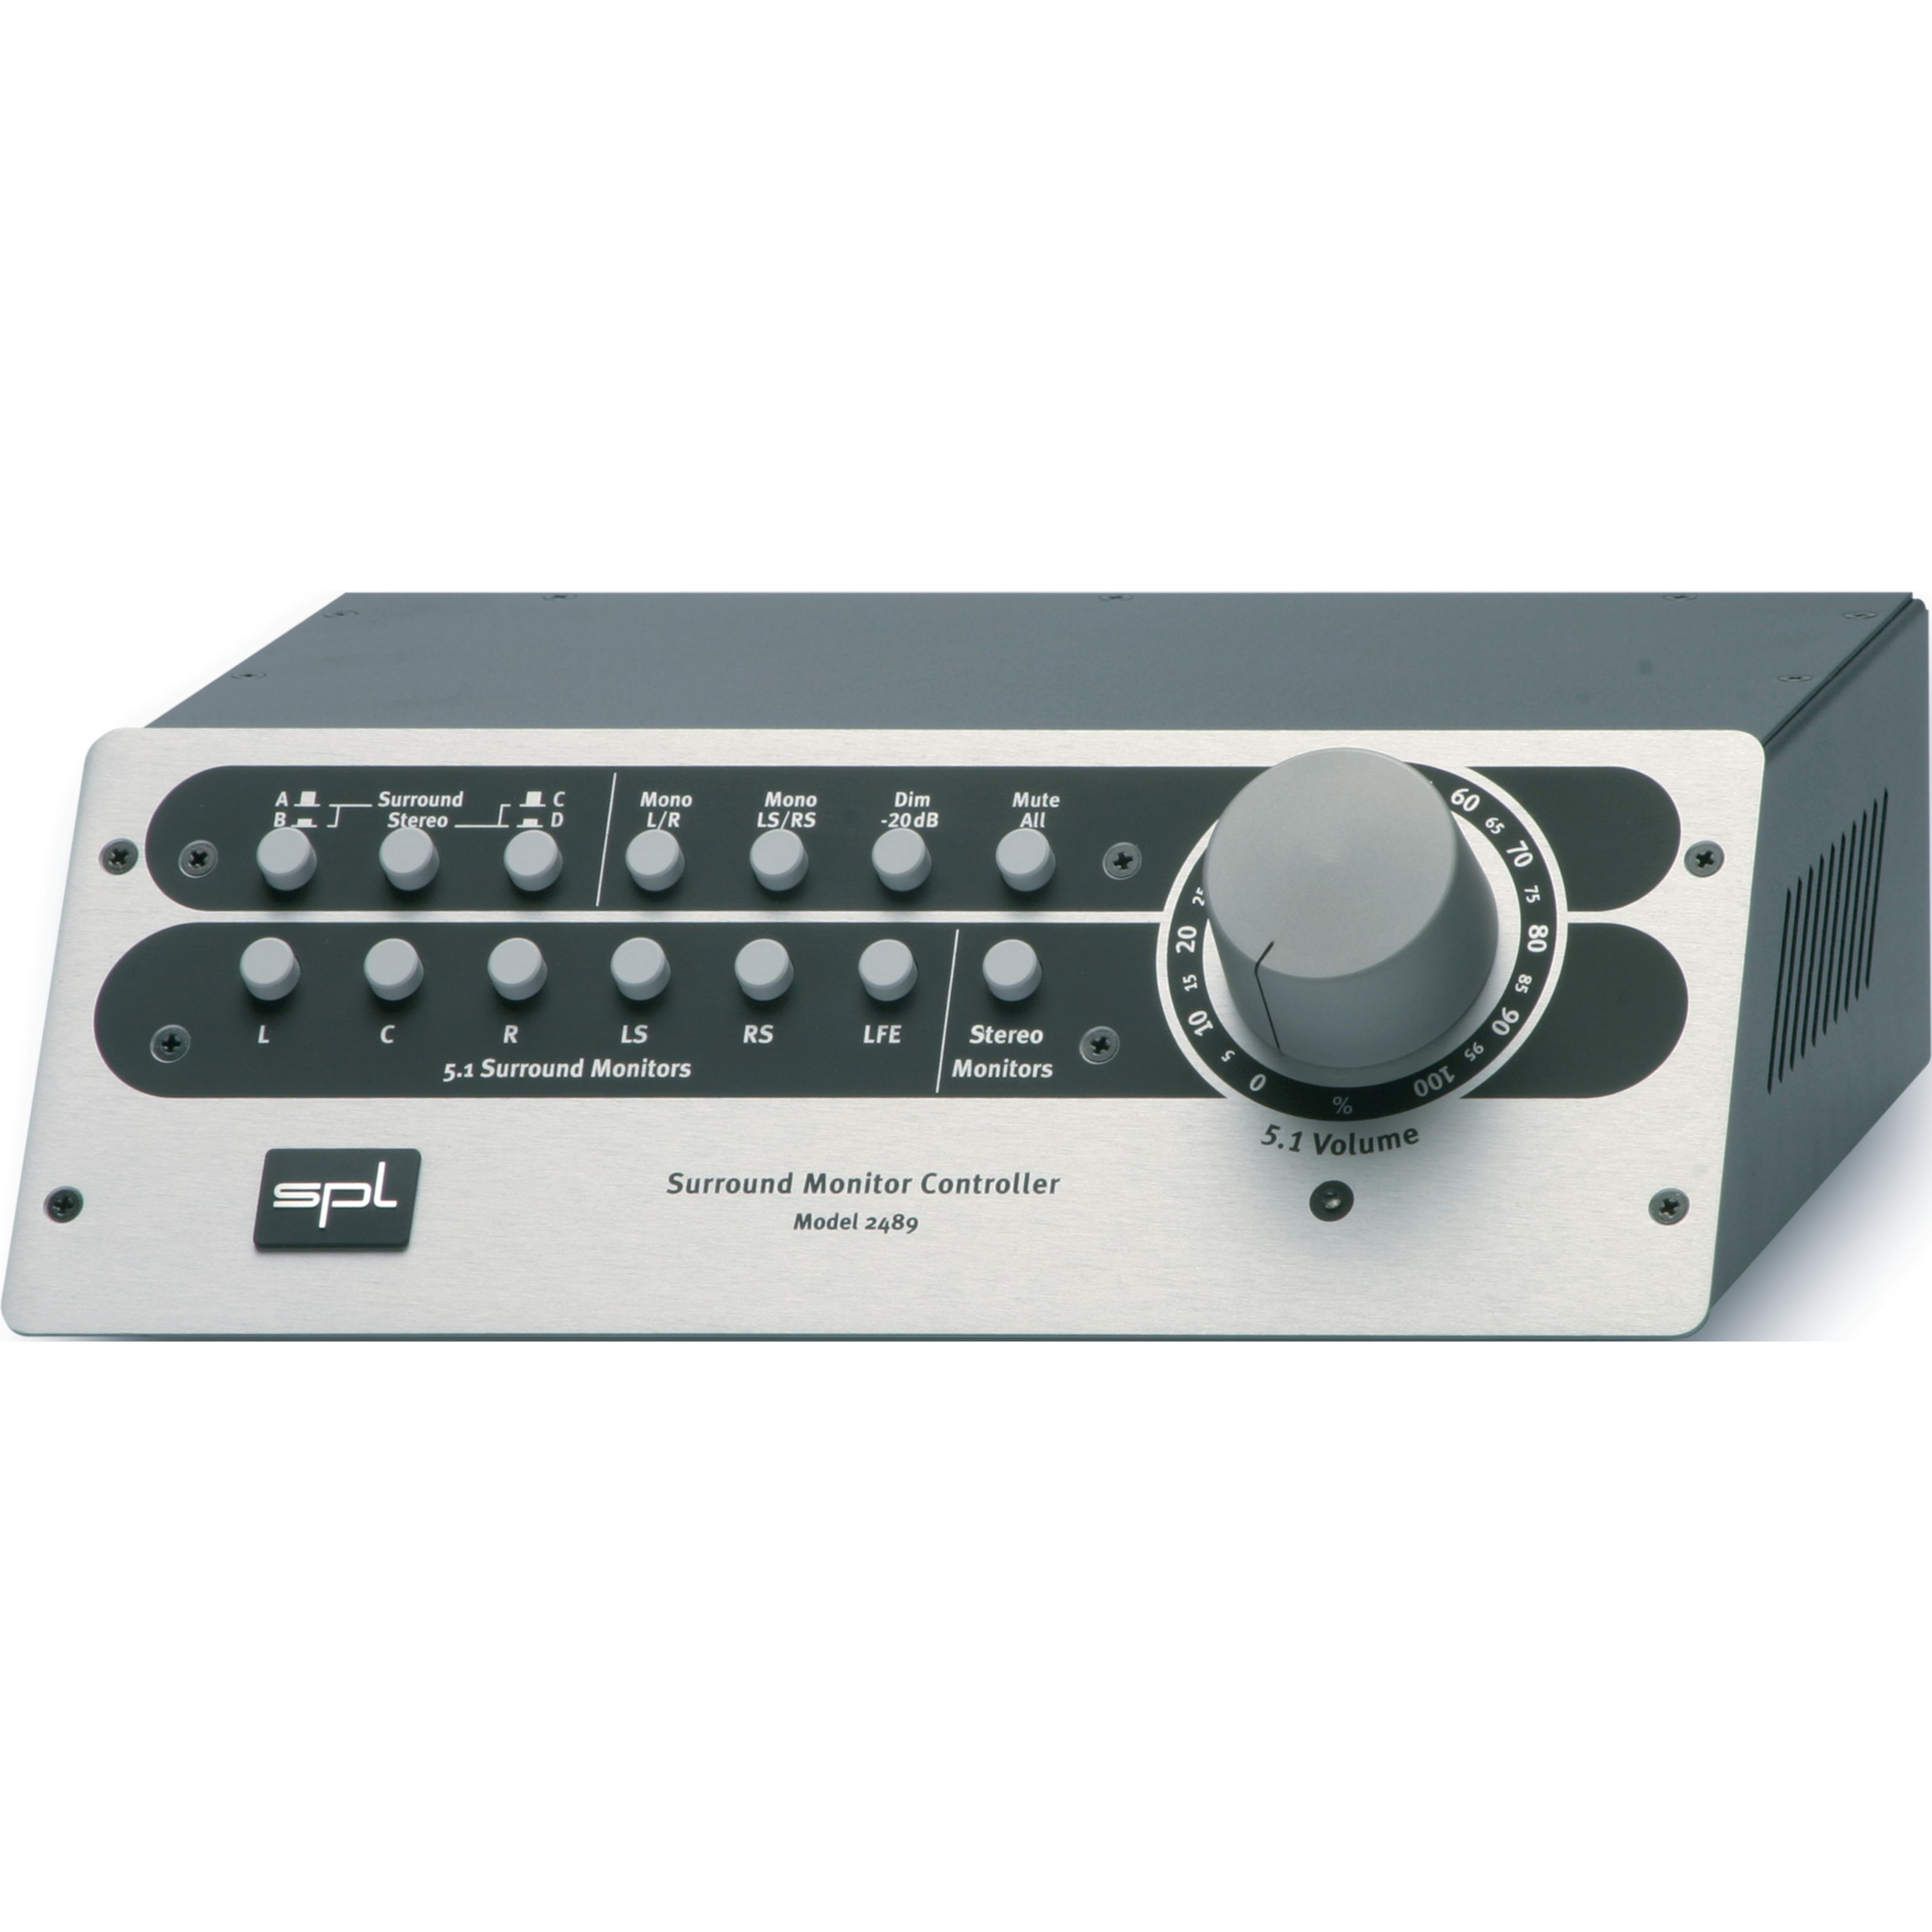 SPL Electronics - SMC Controller 5.1+Stereo In/Out 2489